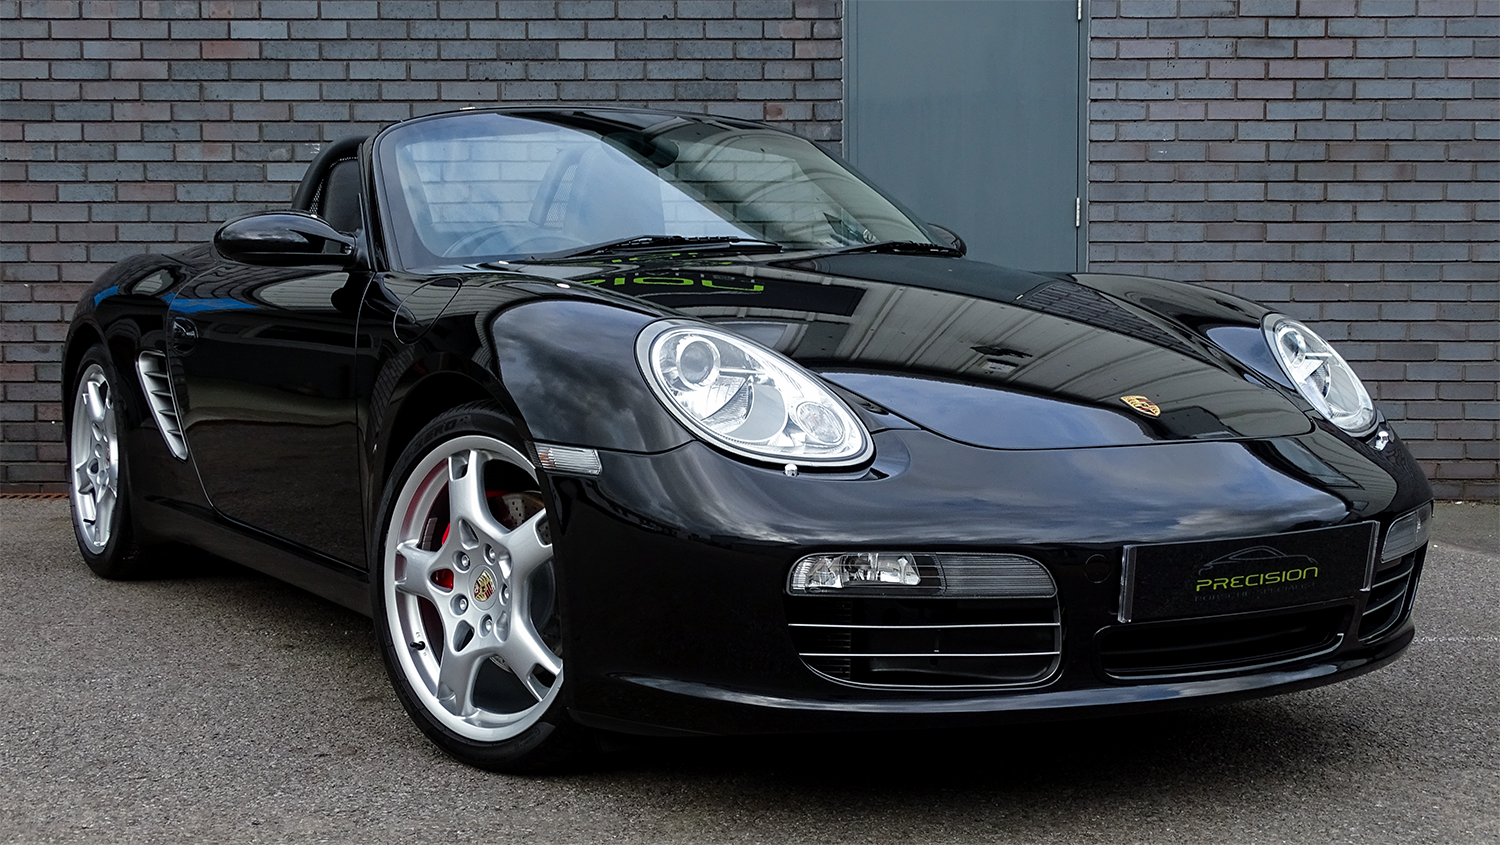 Porsche Boxster S - Colour: Basalt BlackInterior: Black LeatherYear: 2005Mileage: 42,700Engine: 3.4 LitreTransmission: 6-Speed ManualBody Style: Cabriolet (987)Fuel: PetrolDrivetrain: 2 wheel drive